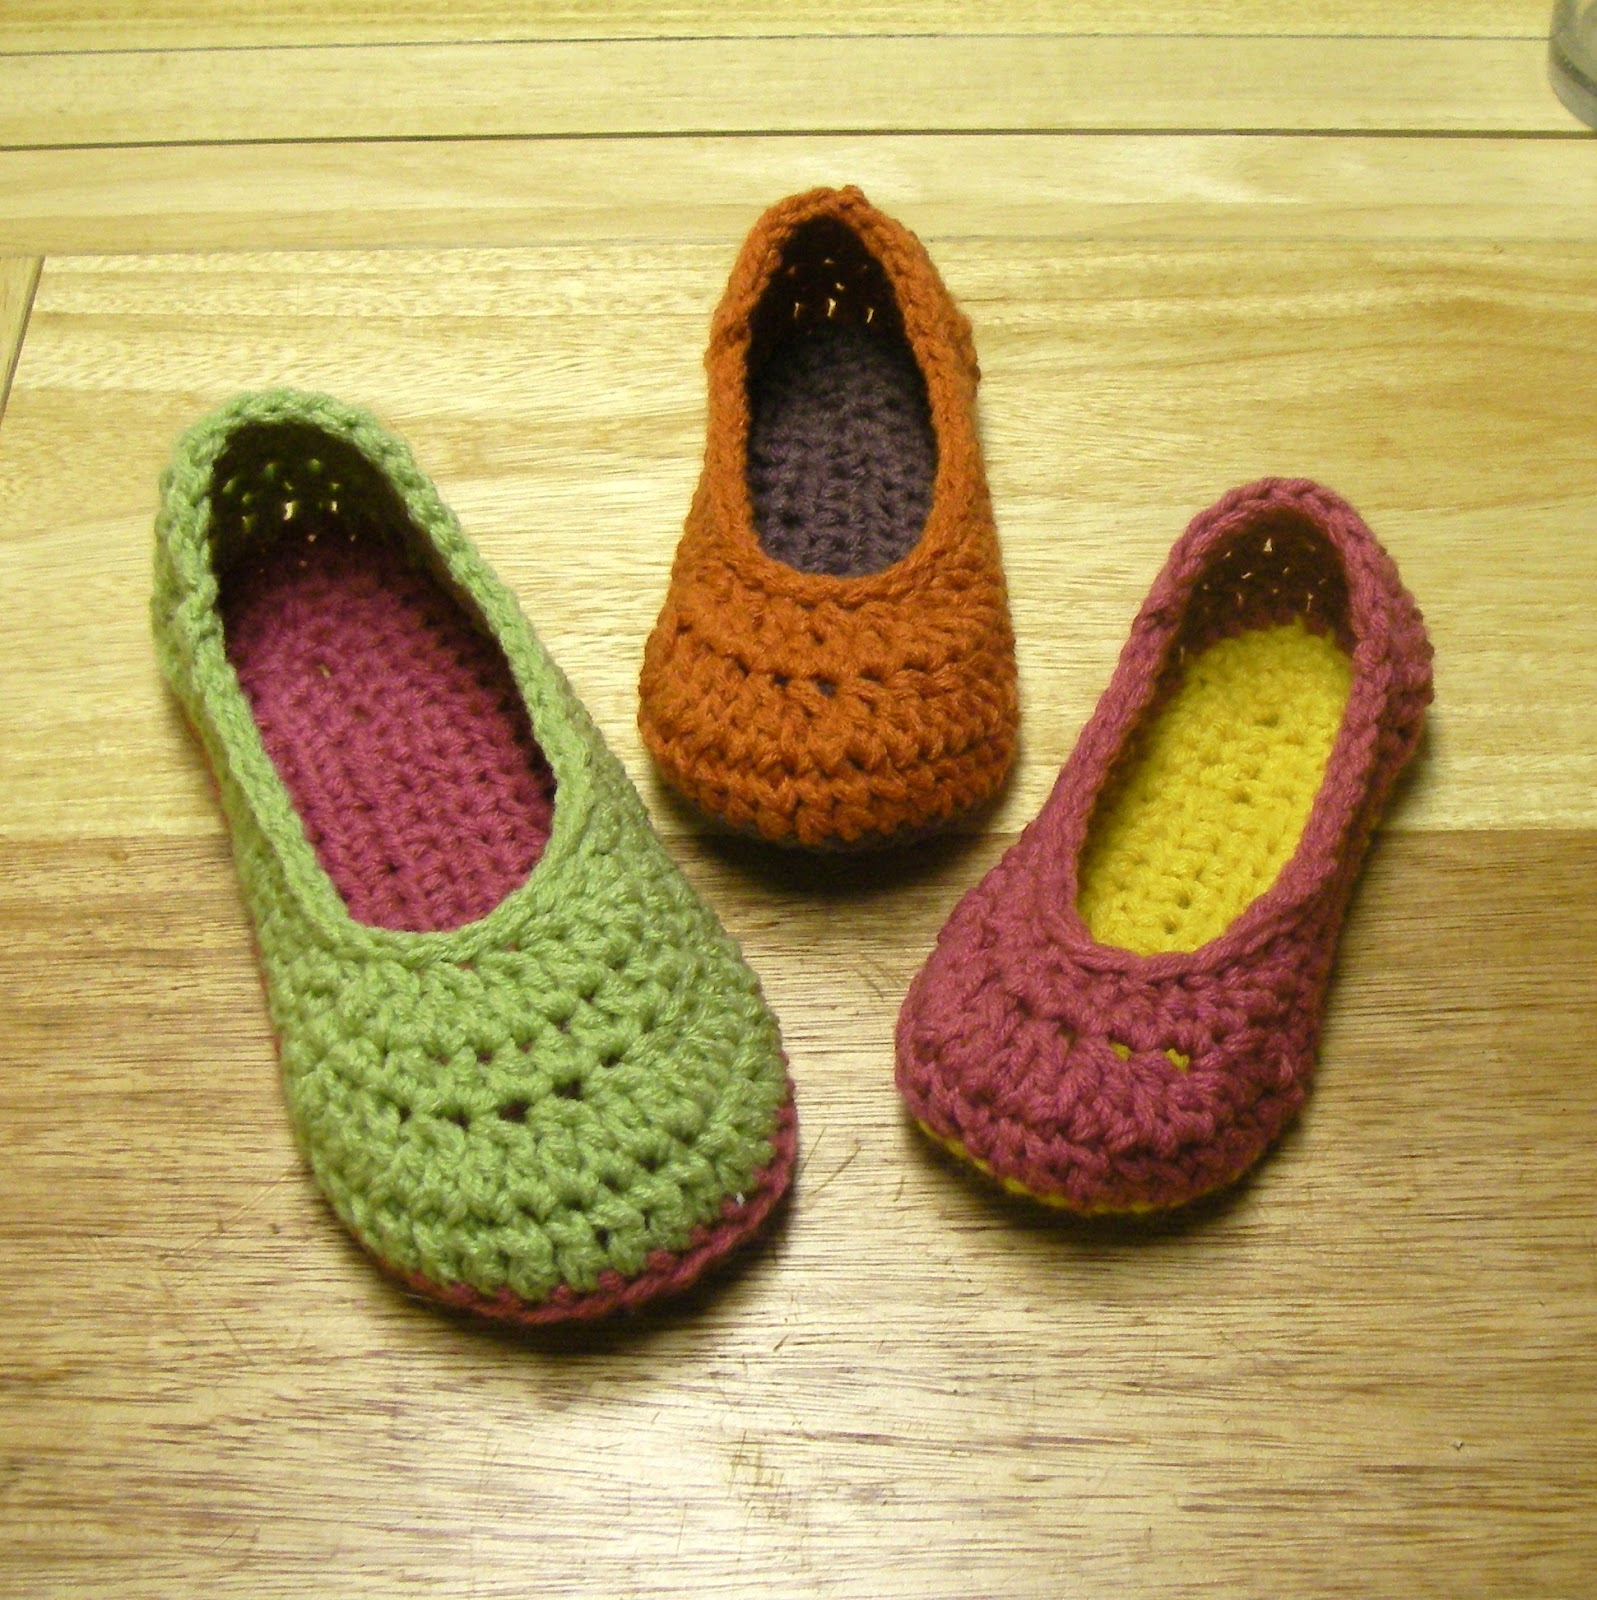 Crochet Shoes : ... has been moved to MAMACHEE.COM: Crocheting and more crocheting